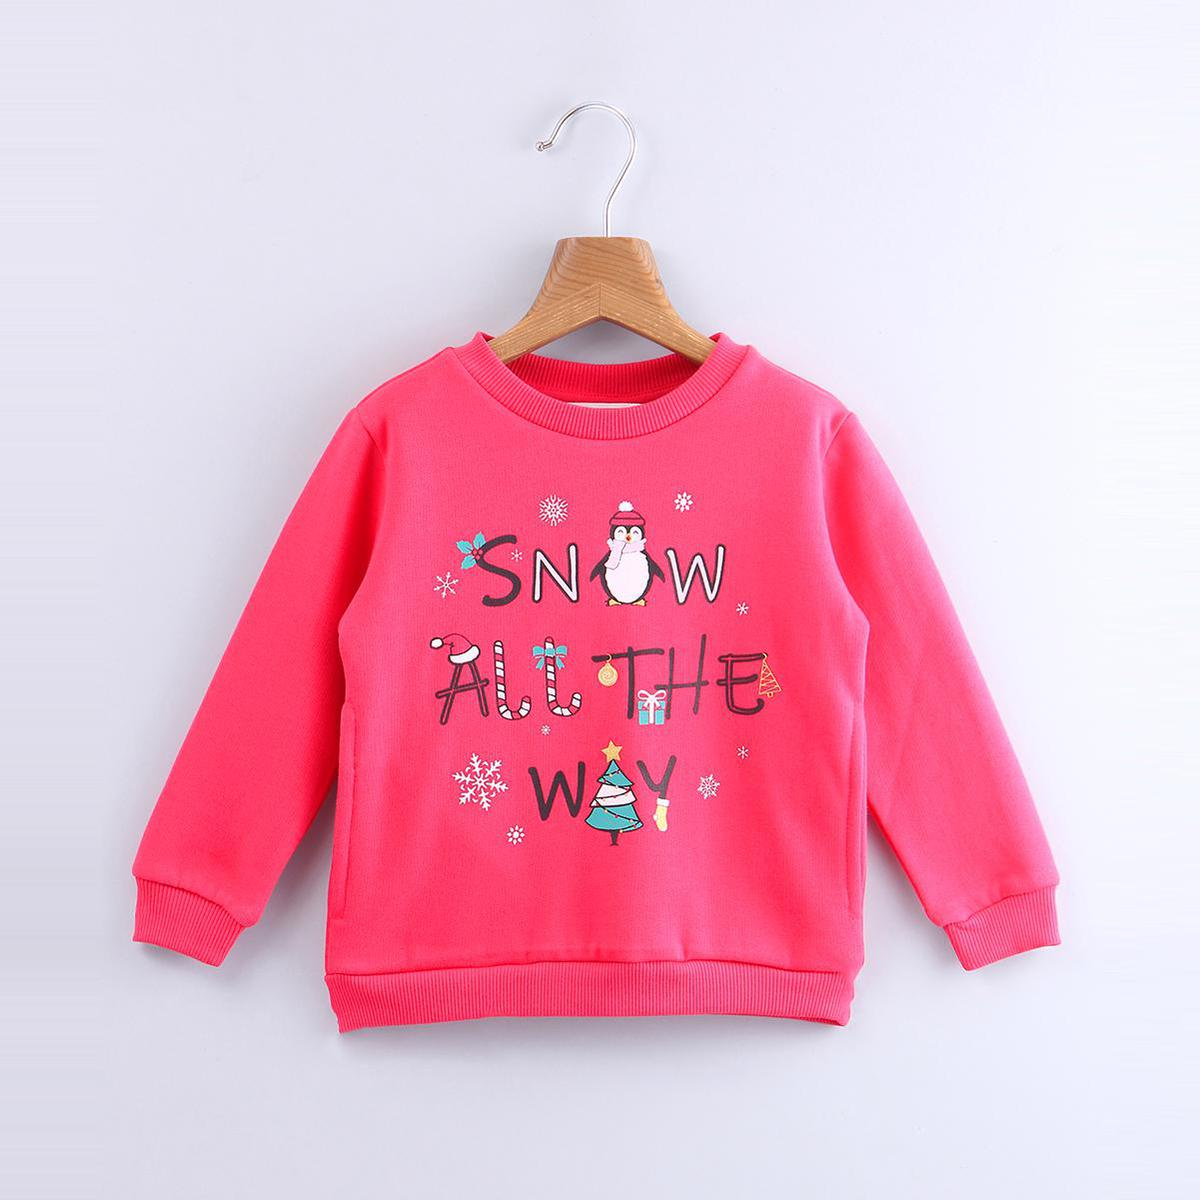 Beebay - Red Colored Snow All The Way Cotton Sweatshirt For Infants Girls